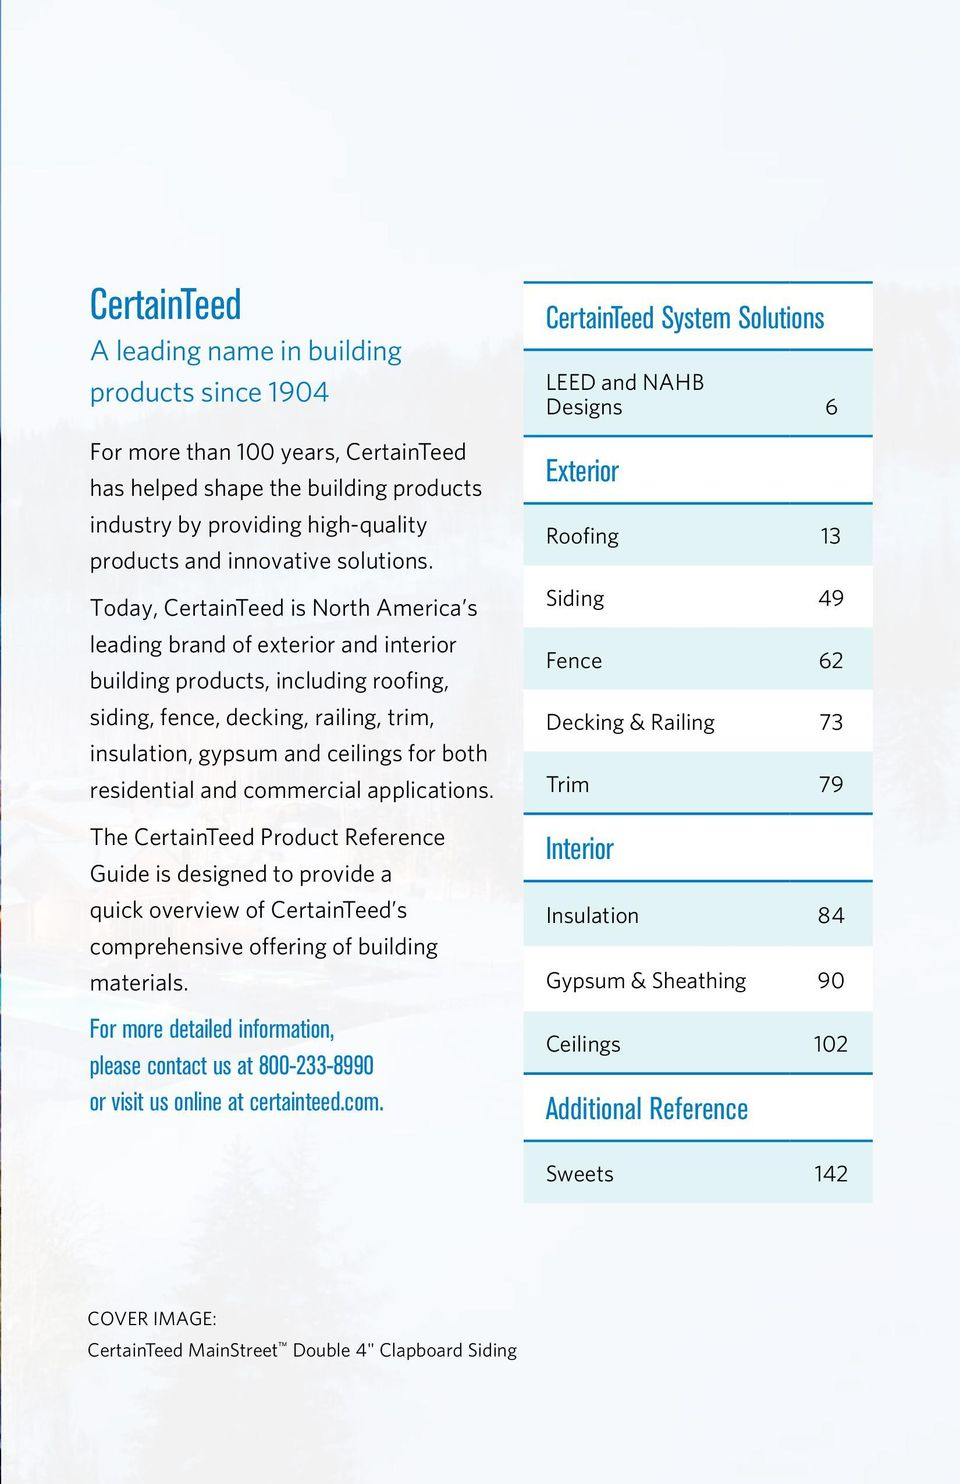 Today, CertainTeed is North America s leading brand of exterior and interior building products, including roofing, siding, fence, decking, railing, trim, insulation, gypsum and ceilings for both